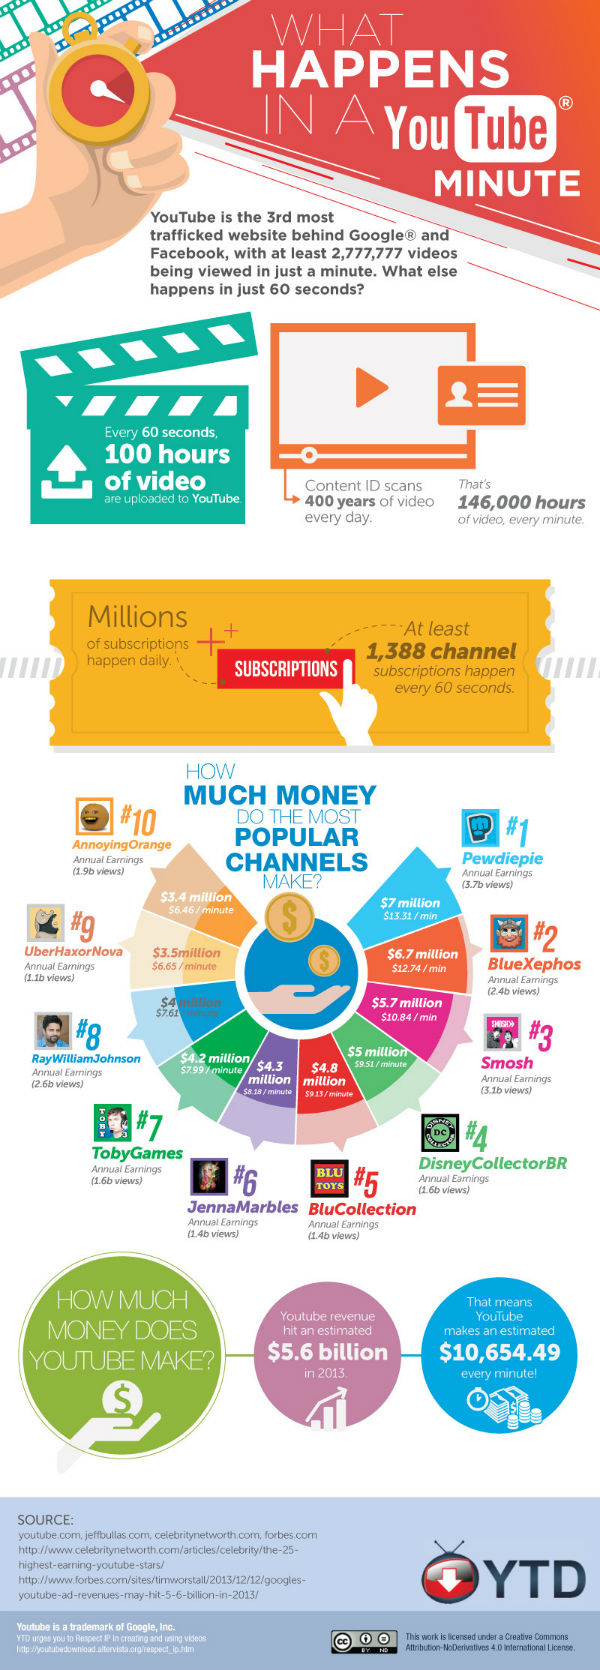 youtube-social-media-facts-infographic.jpg